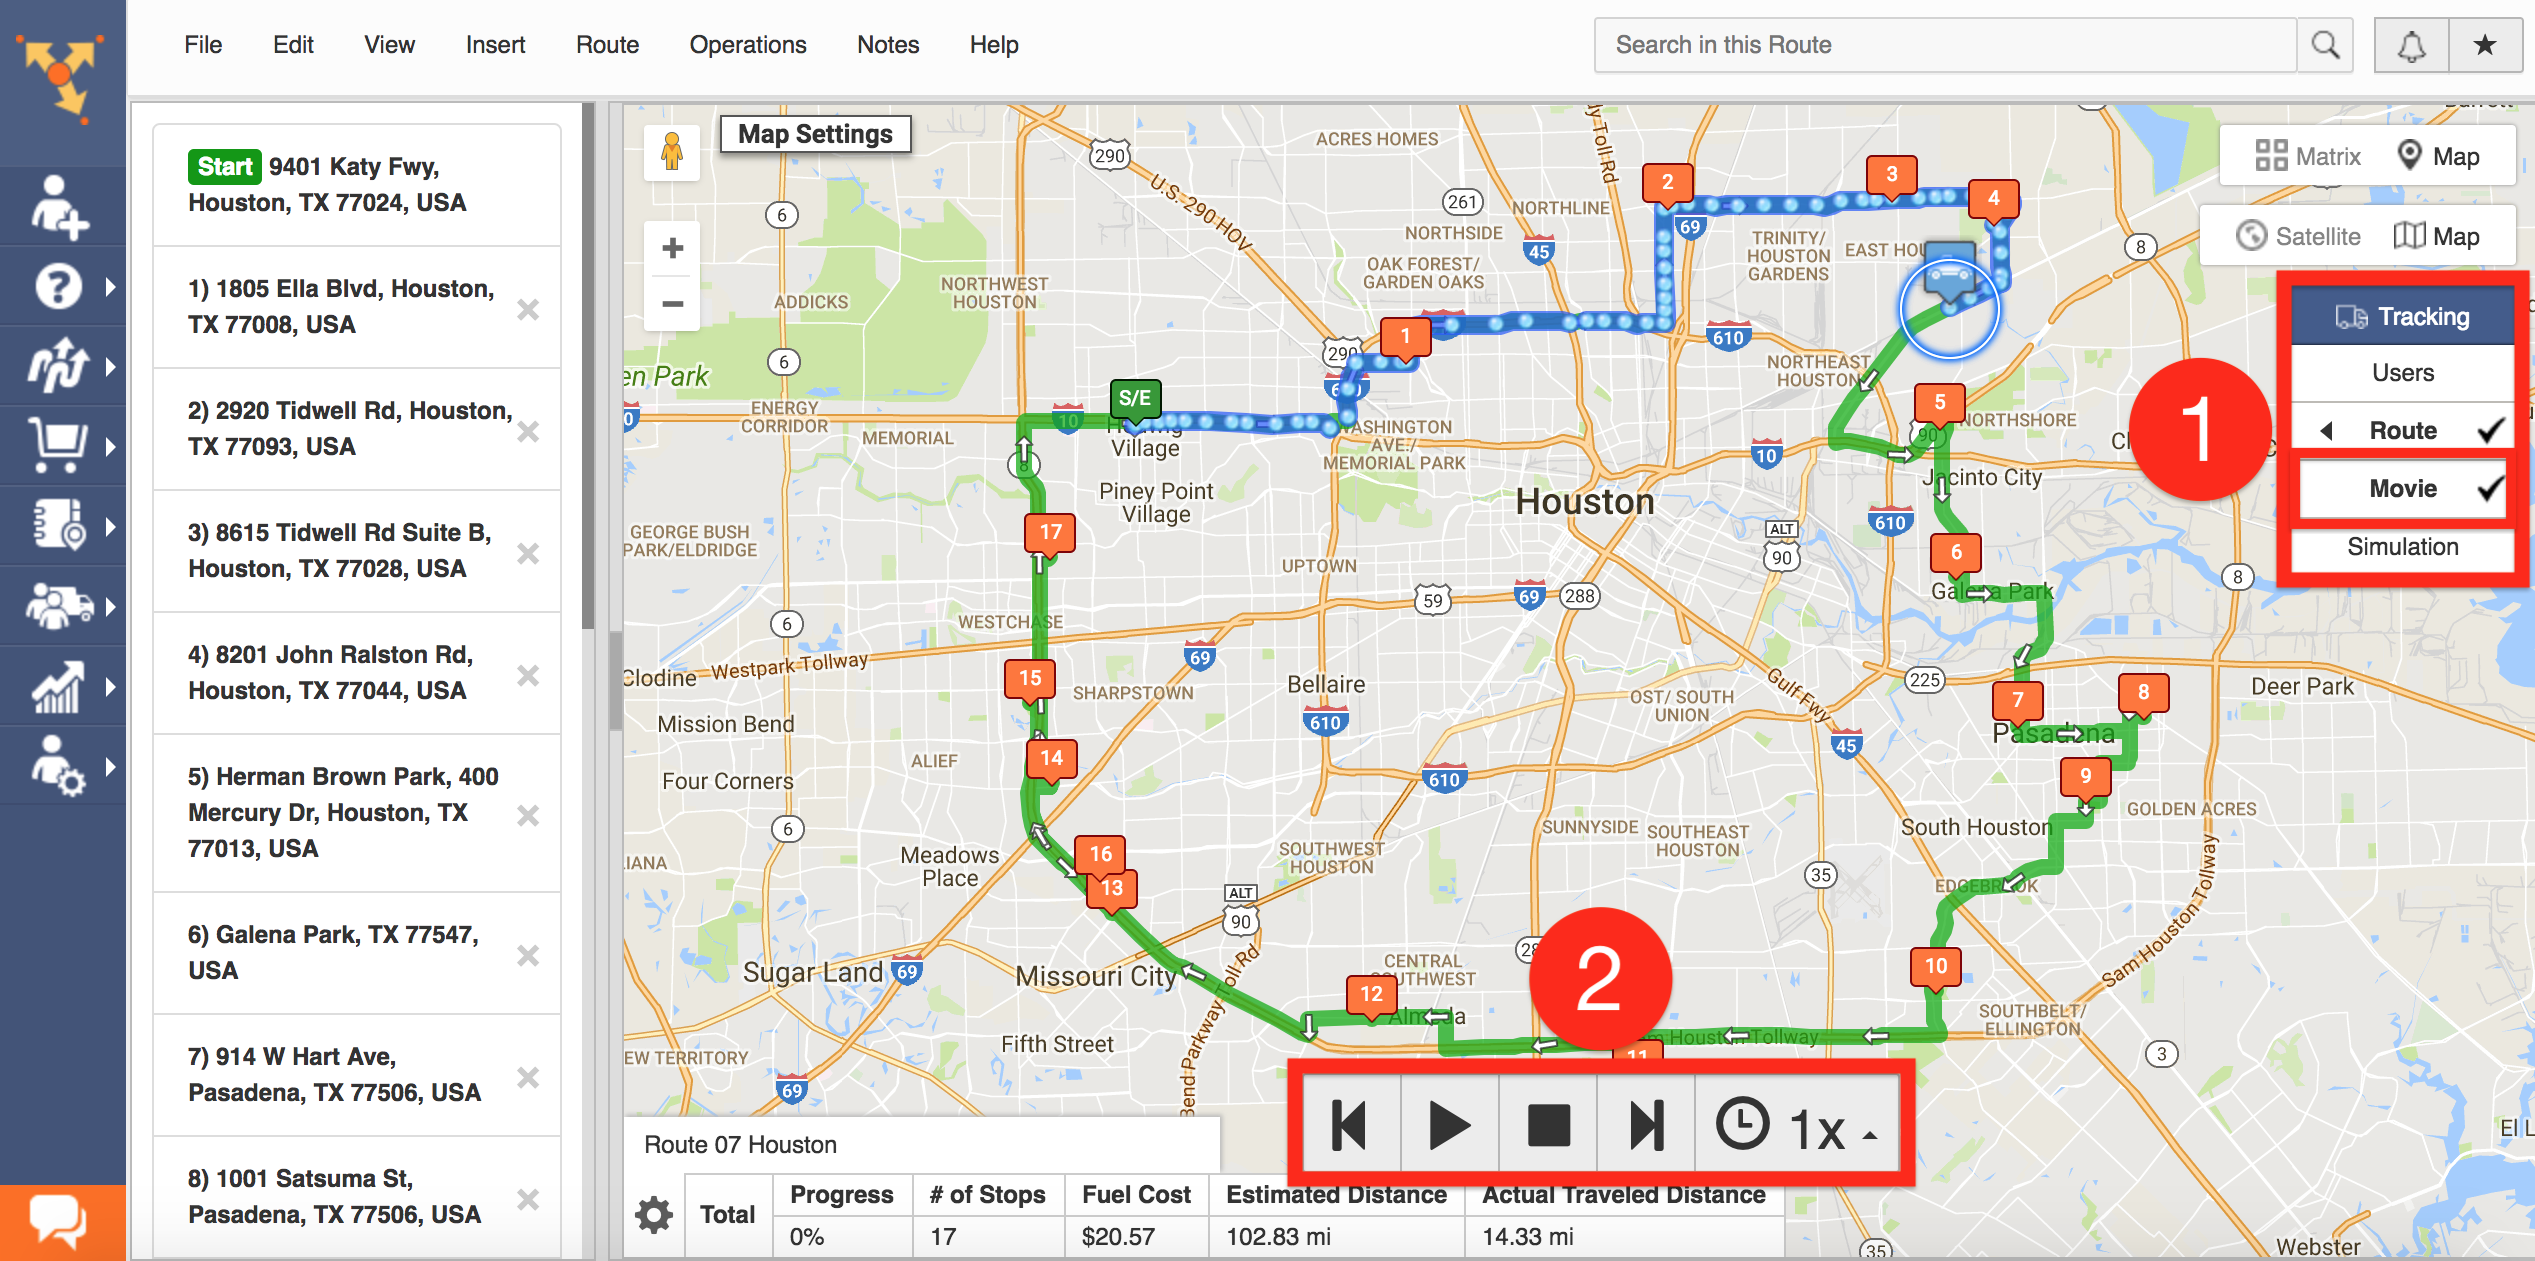 Route4Me Tracking: Real-Time GPS Tracking, GPS Distance